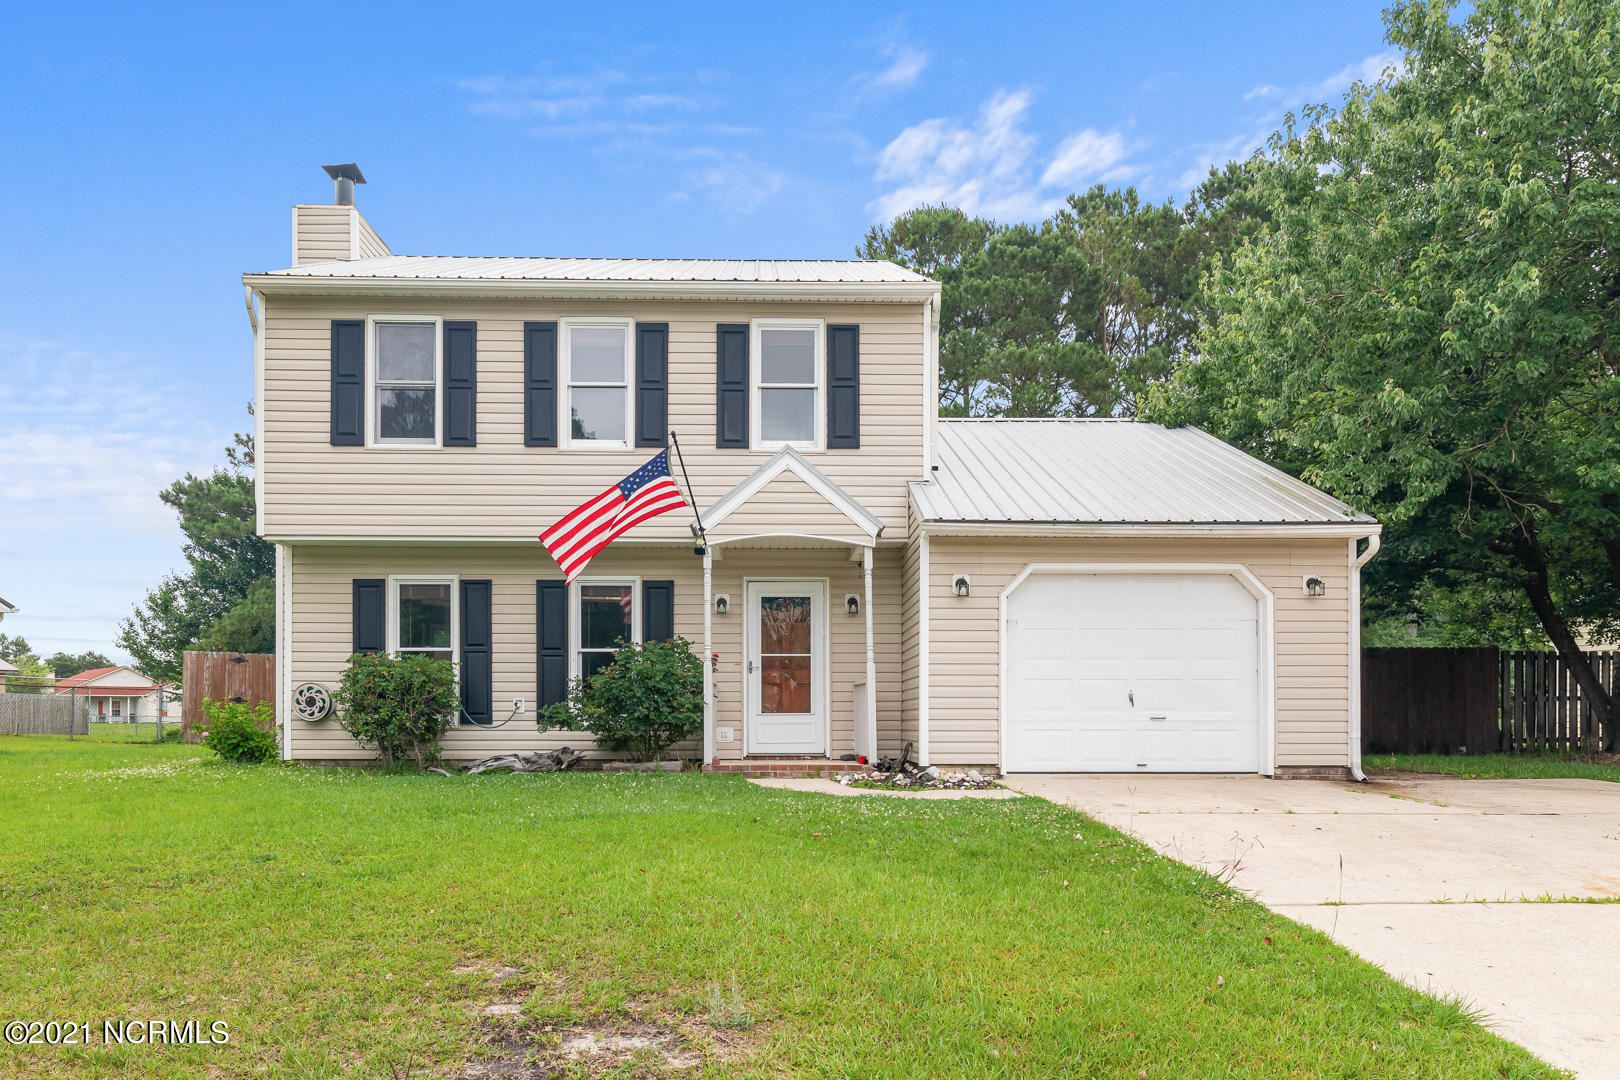 Photo for 114 Horse Shoe Bend, Jacksonville, NC 28546 (MLS # 100275613)